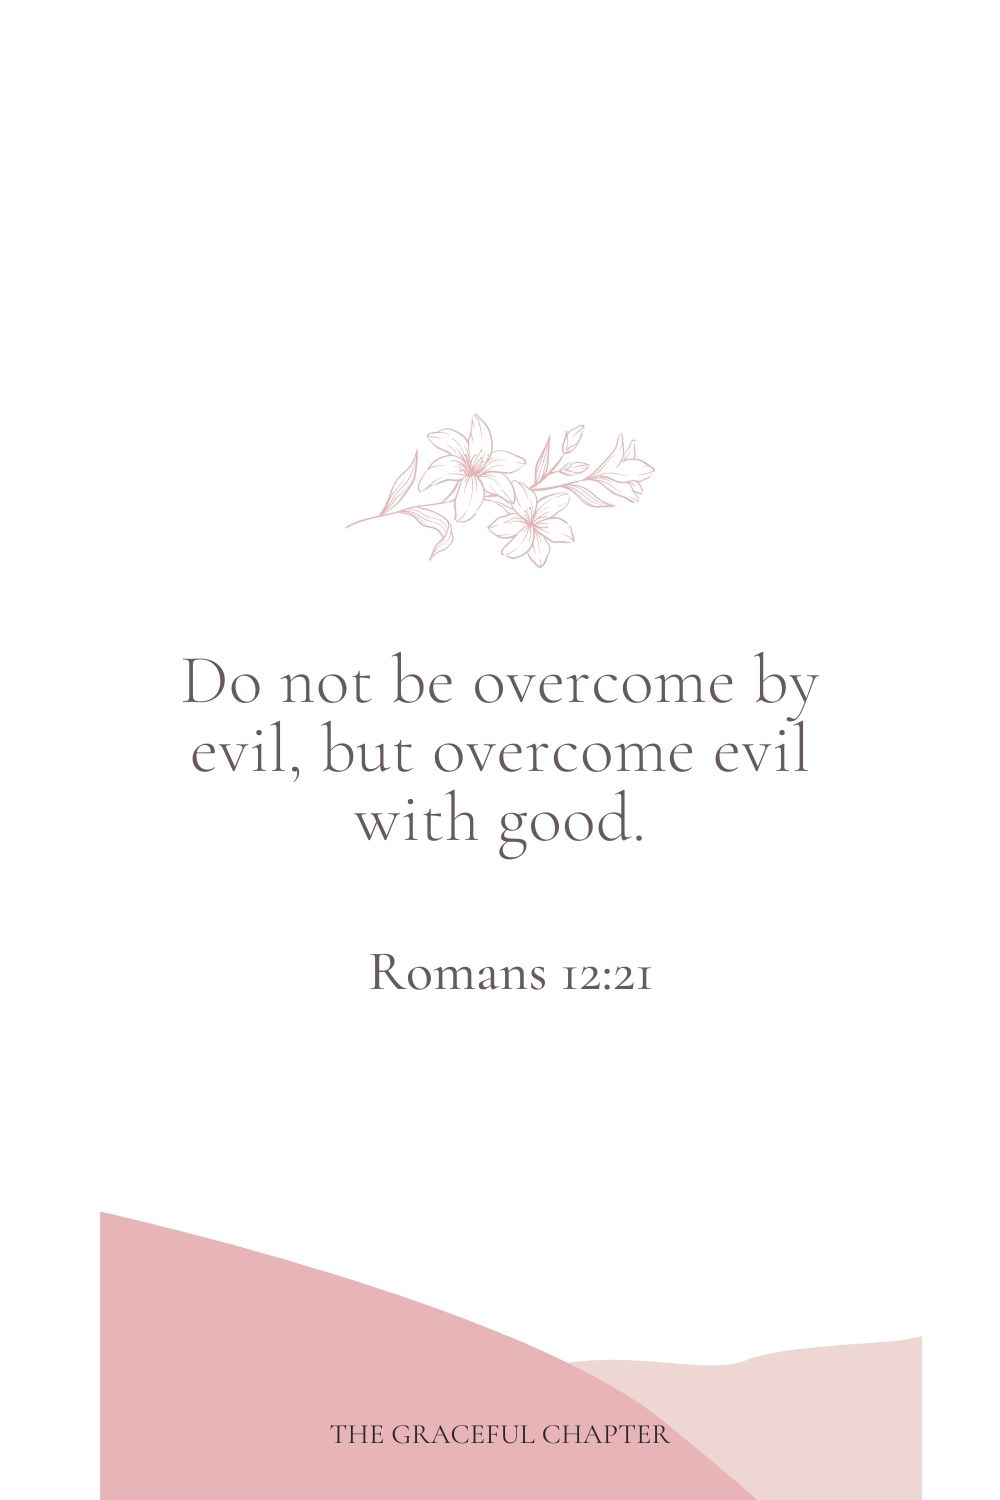 Do not be overcome by evil, but overcome evil with good. Romans 12:21